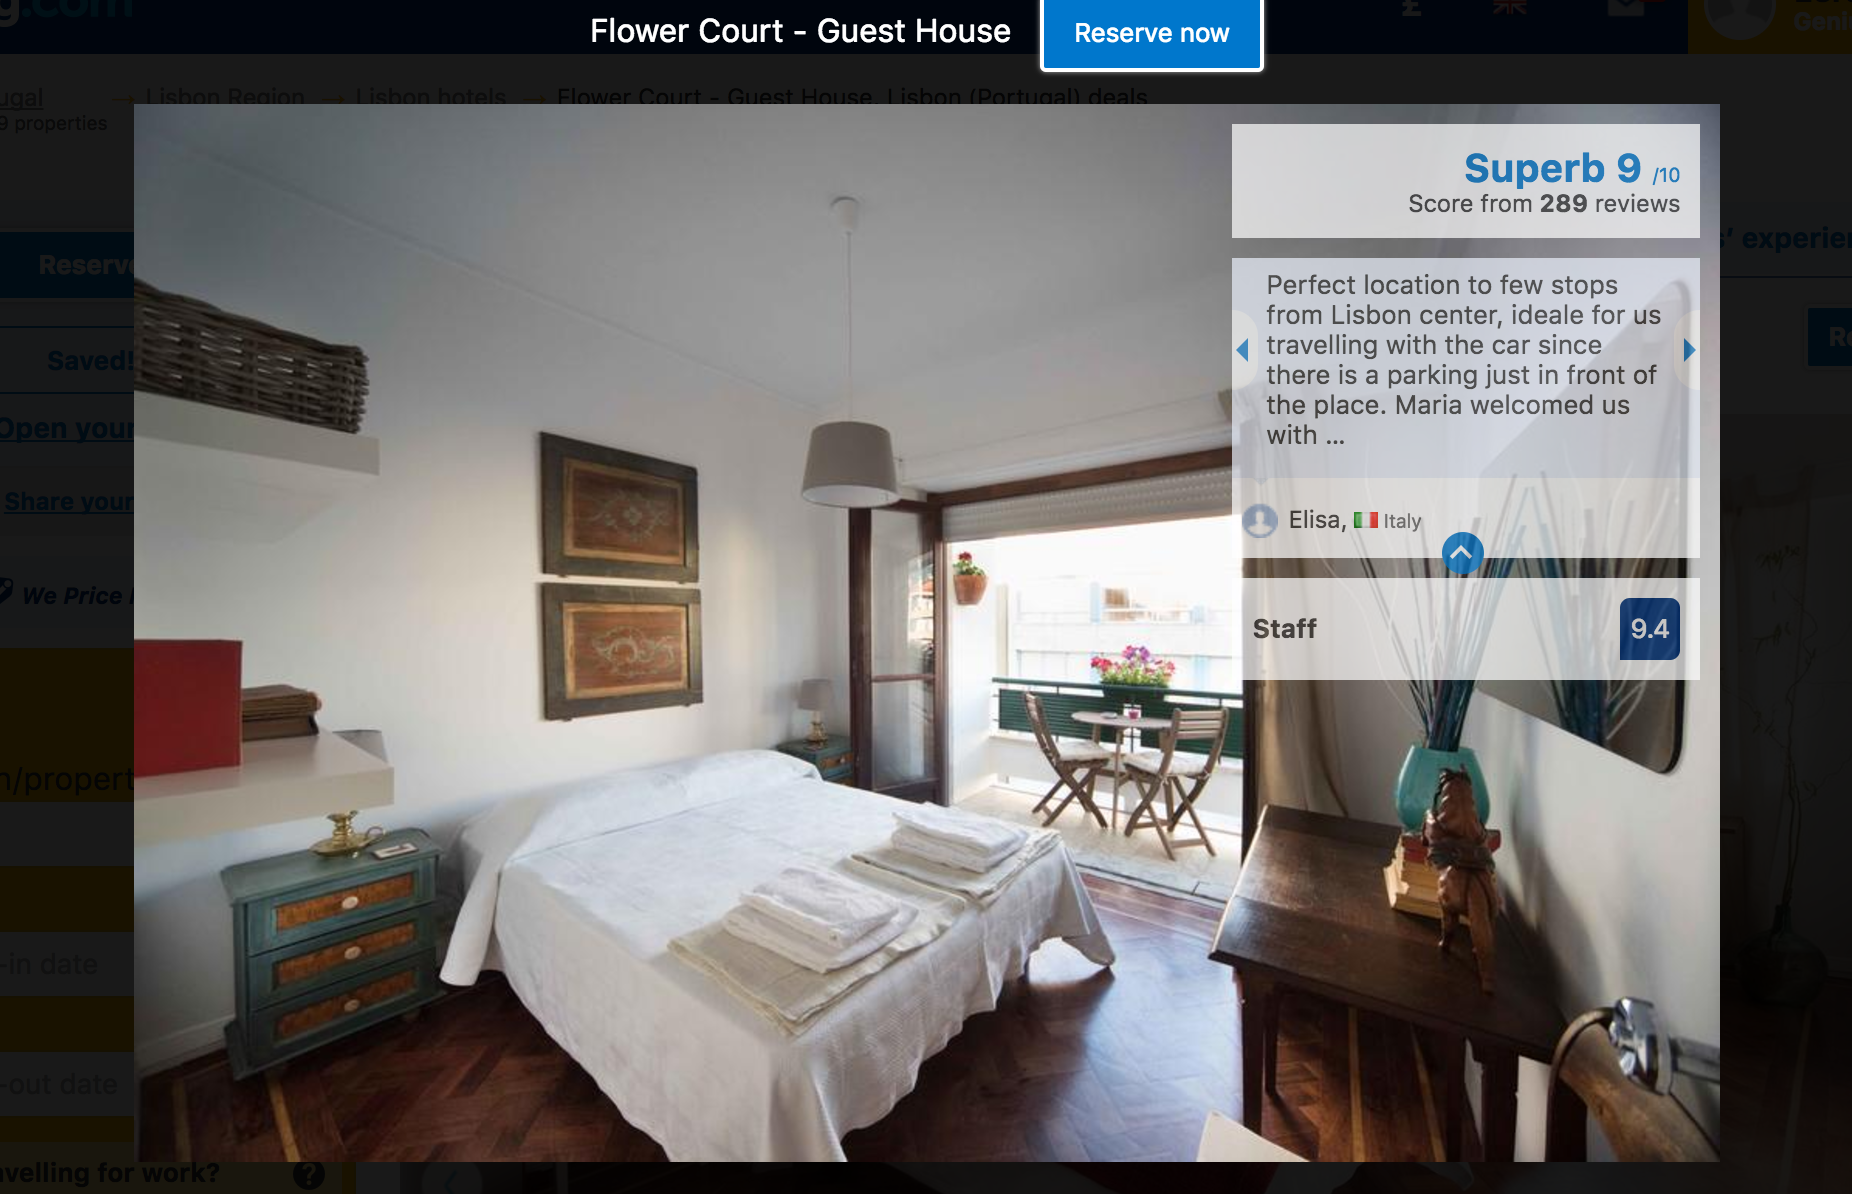 Flower Court Guesthouse on booking.com